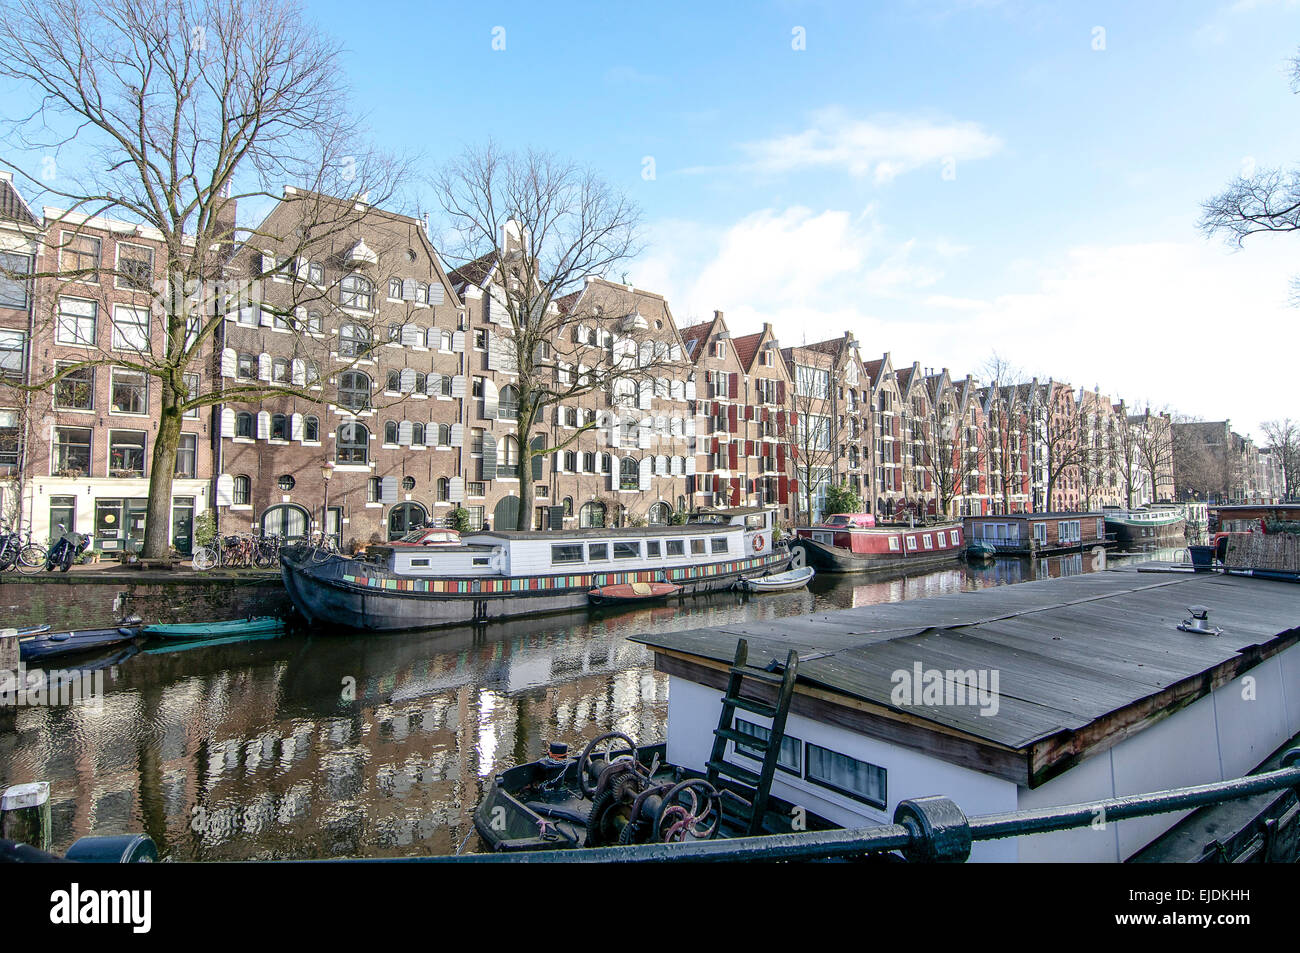 Brouwersgracht Canal in Amsterdam on a sunny day in winter.  A view of canal boats and barges & converted red - Stock Image